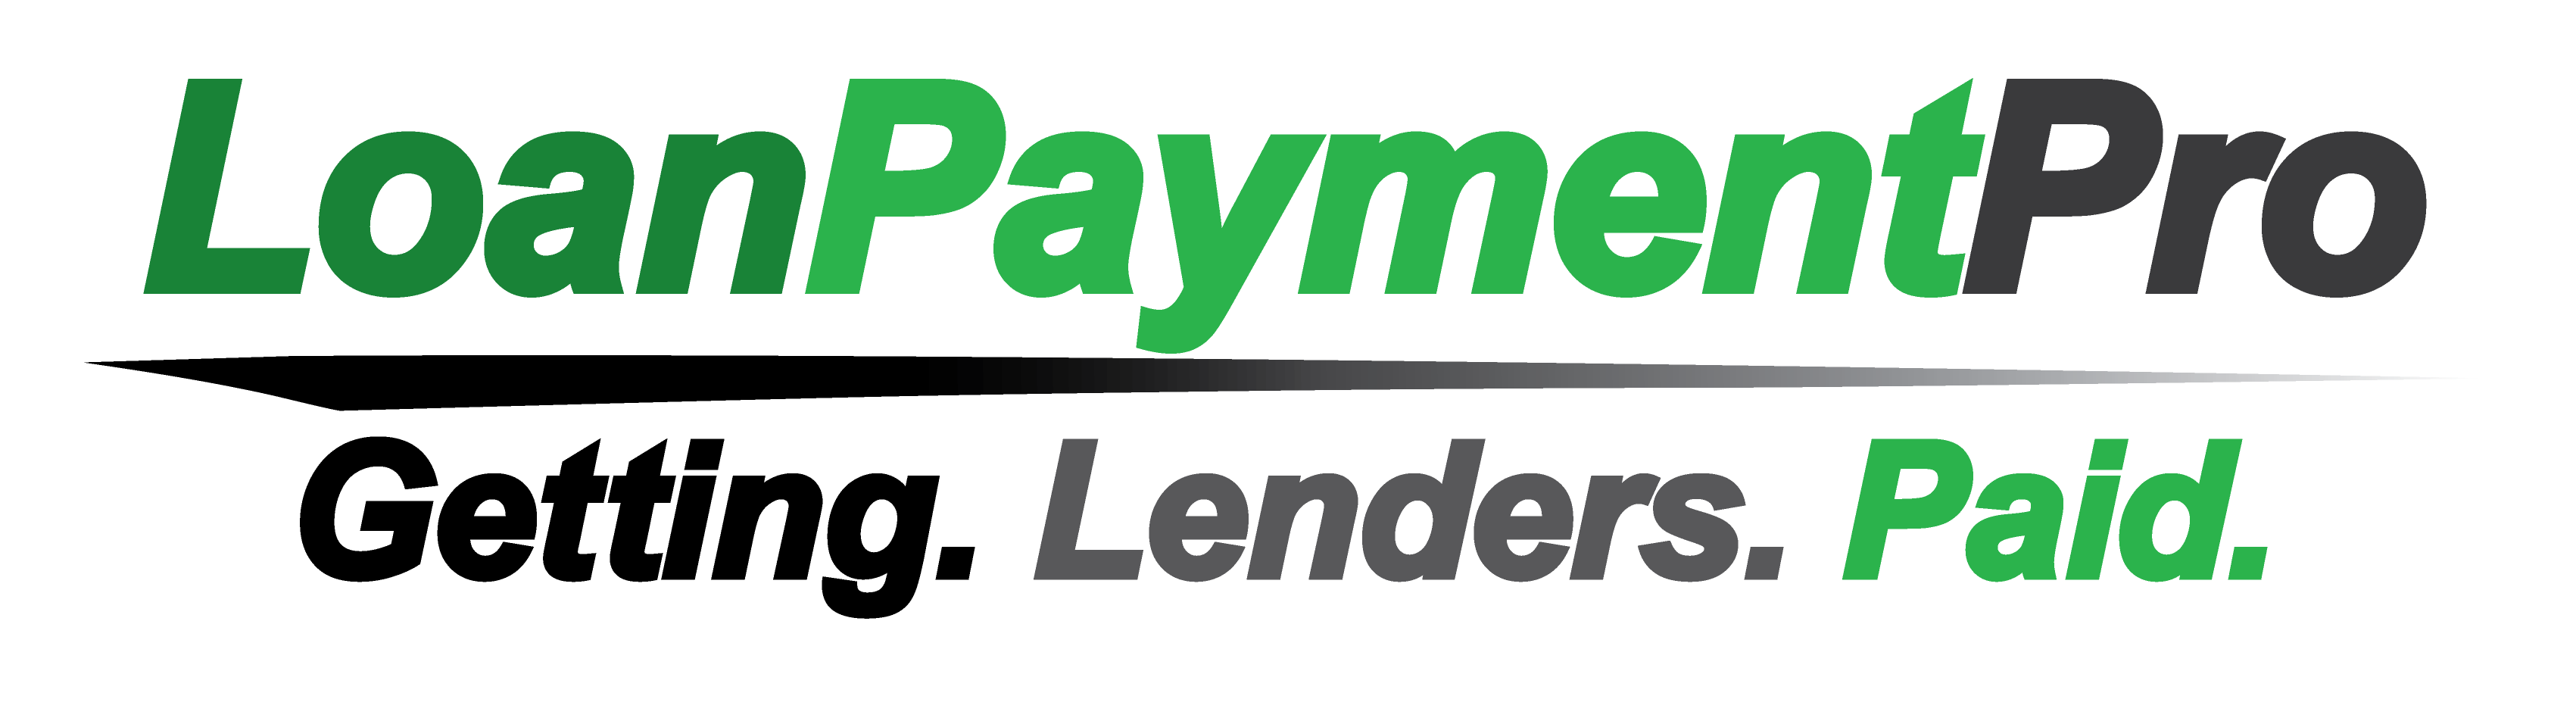 Loan Payment Pro Logo